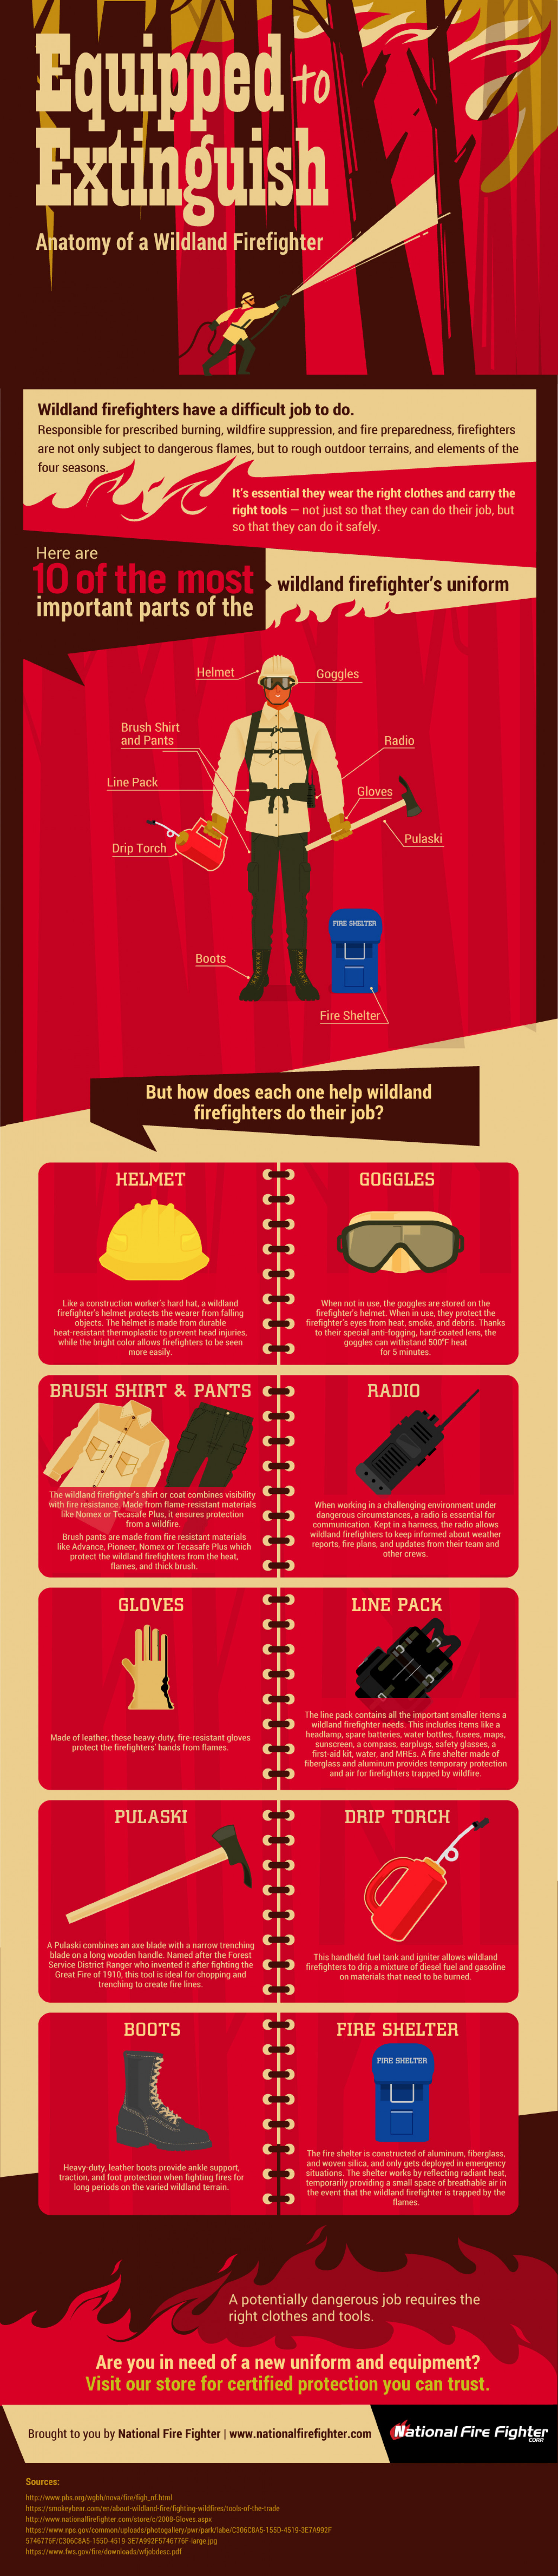 Equipped to Extinguish: Anatomy of a Wildland Firefighter [Infographic] Infographic